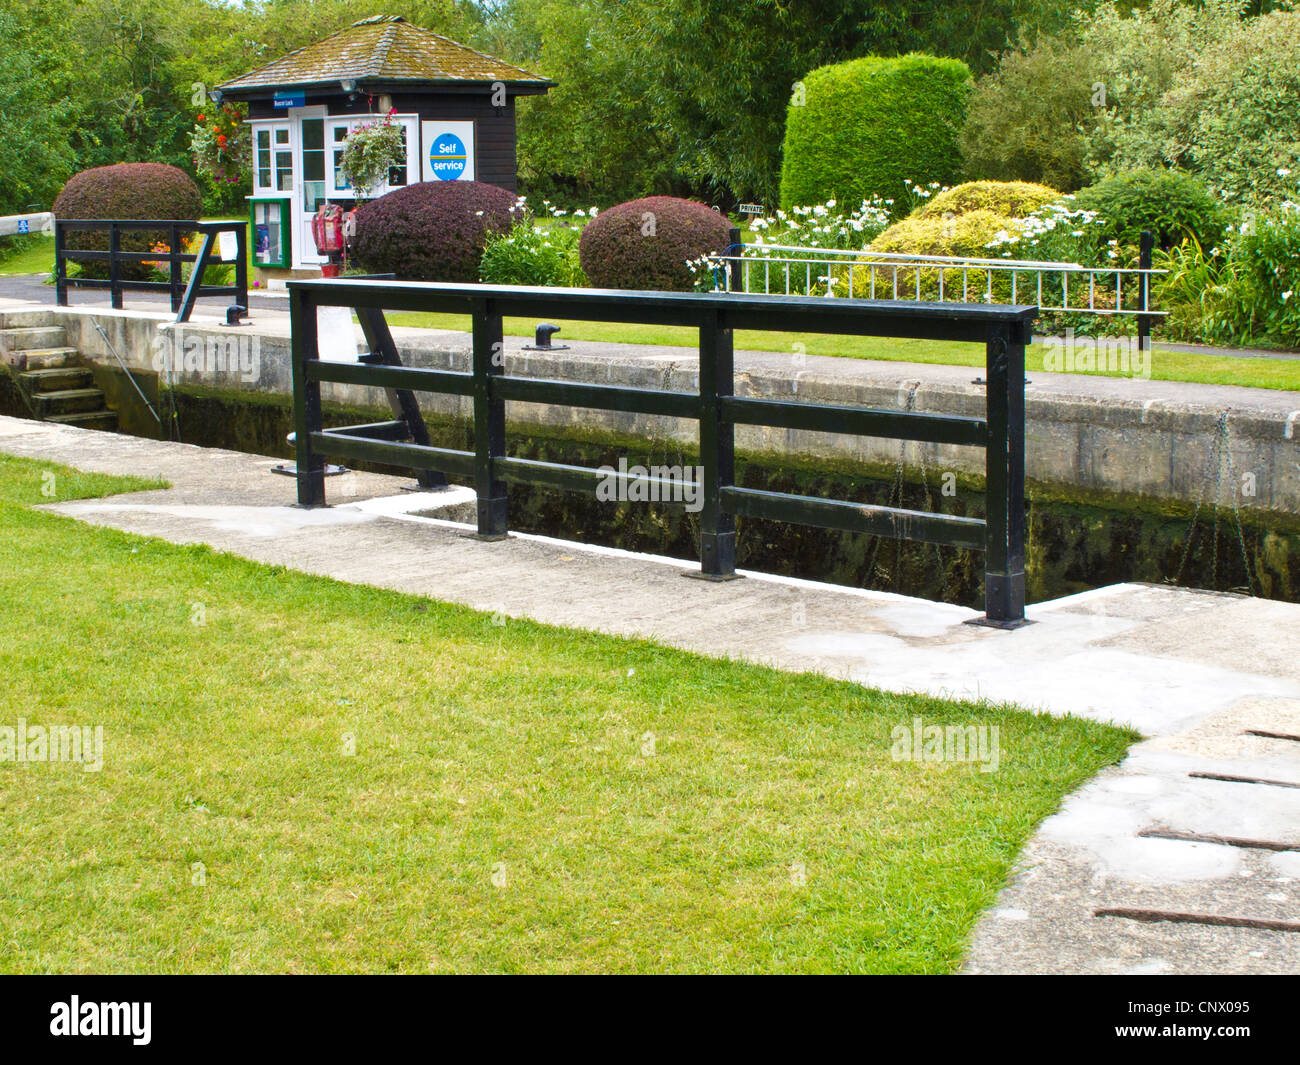 Buscot Lock, the smallest on the river Thames at Buscot Weir, Oxfordshire, England, UK - Stock Image